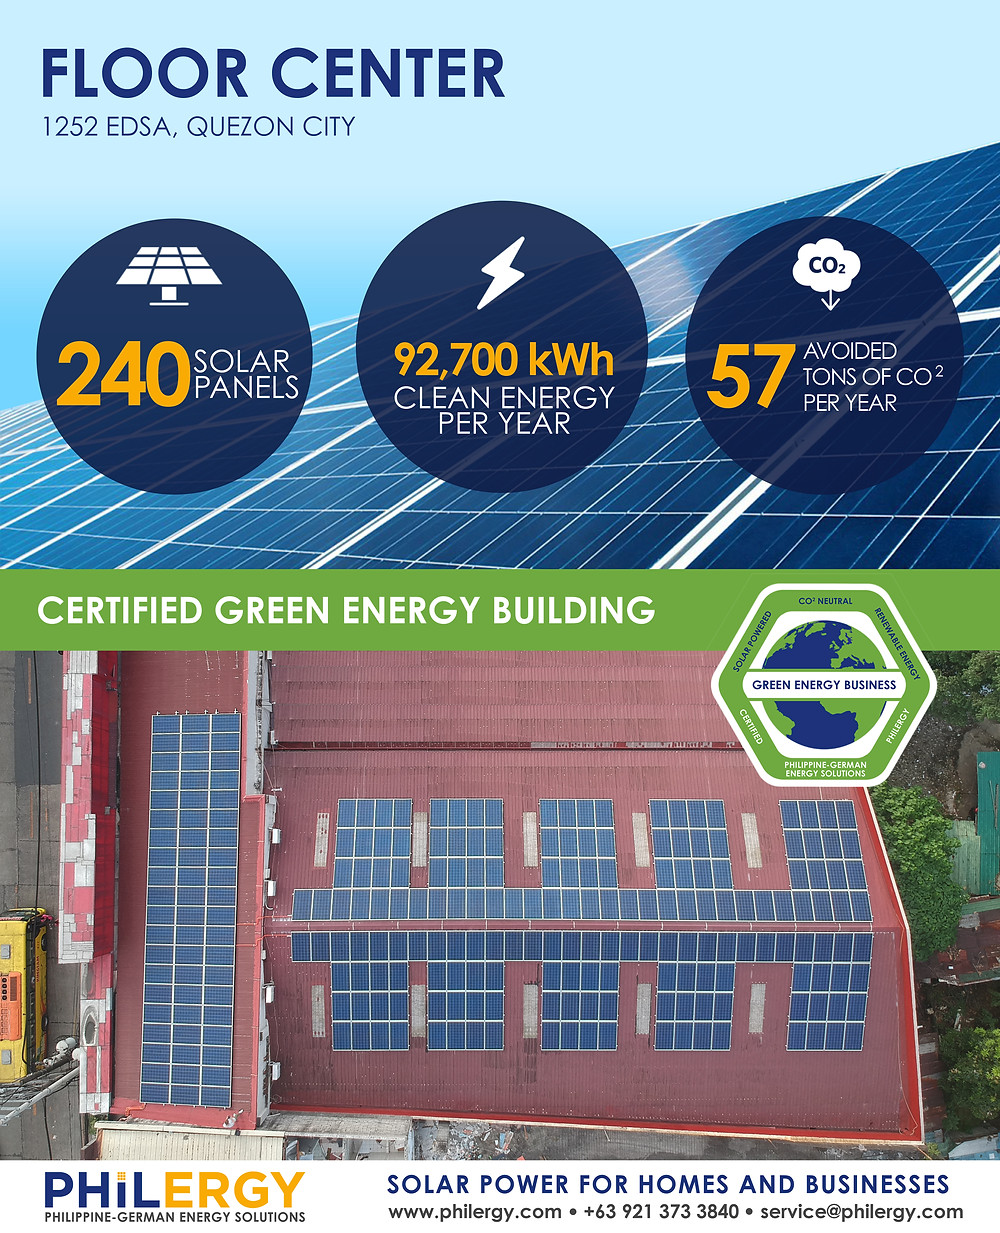 PHILERGY German Solar for Floor Center - high quality solar power for industrial, commercial and residential rooftops in the Philippines